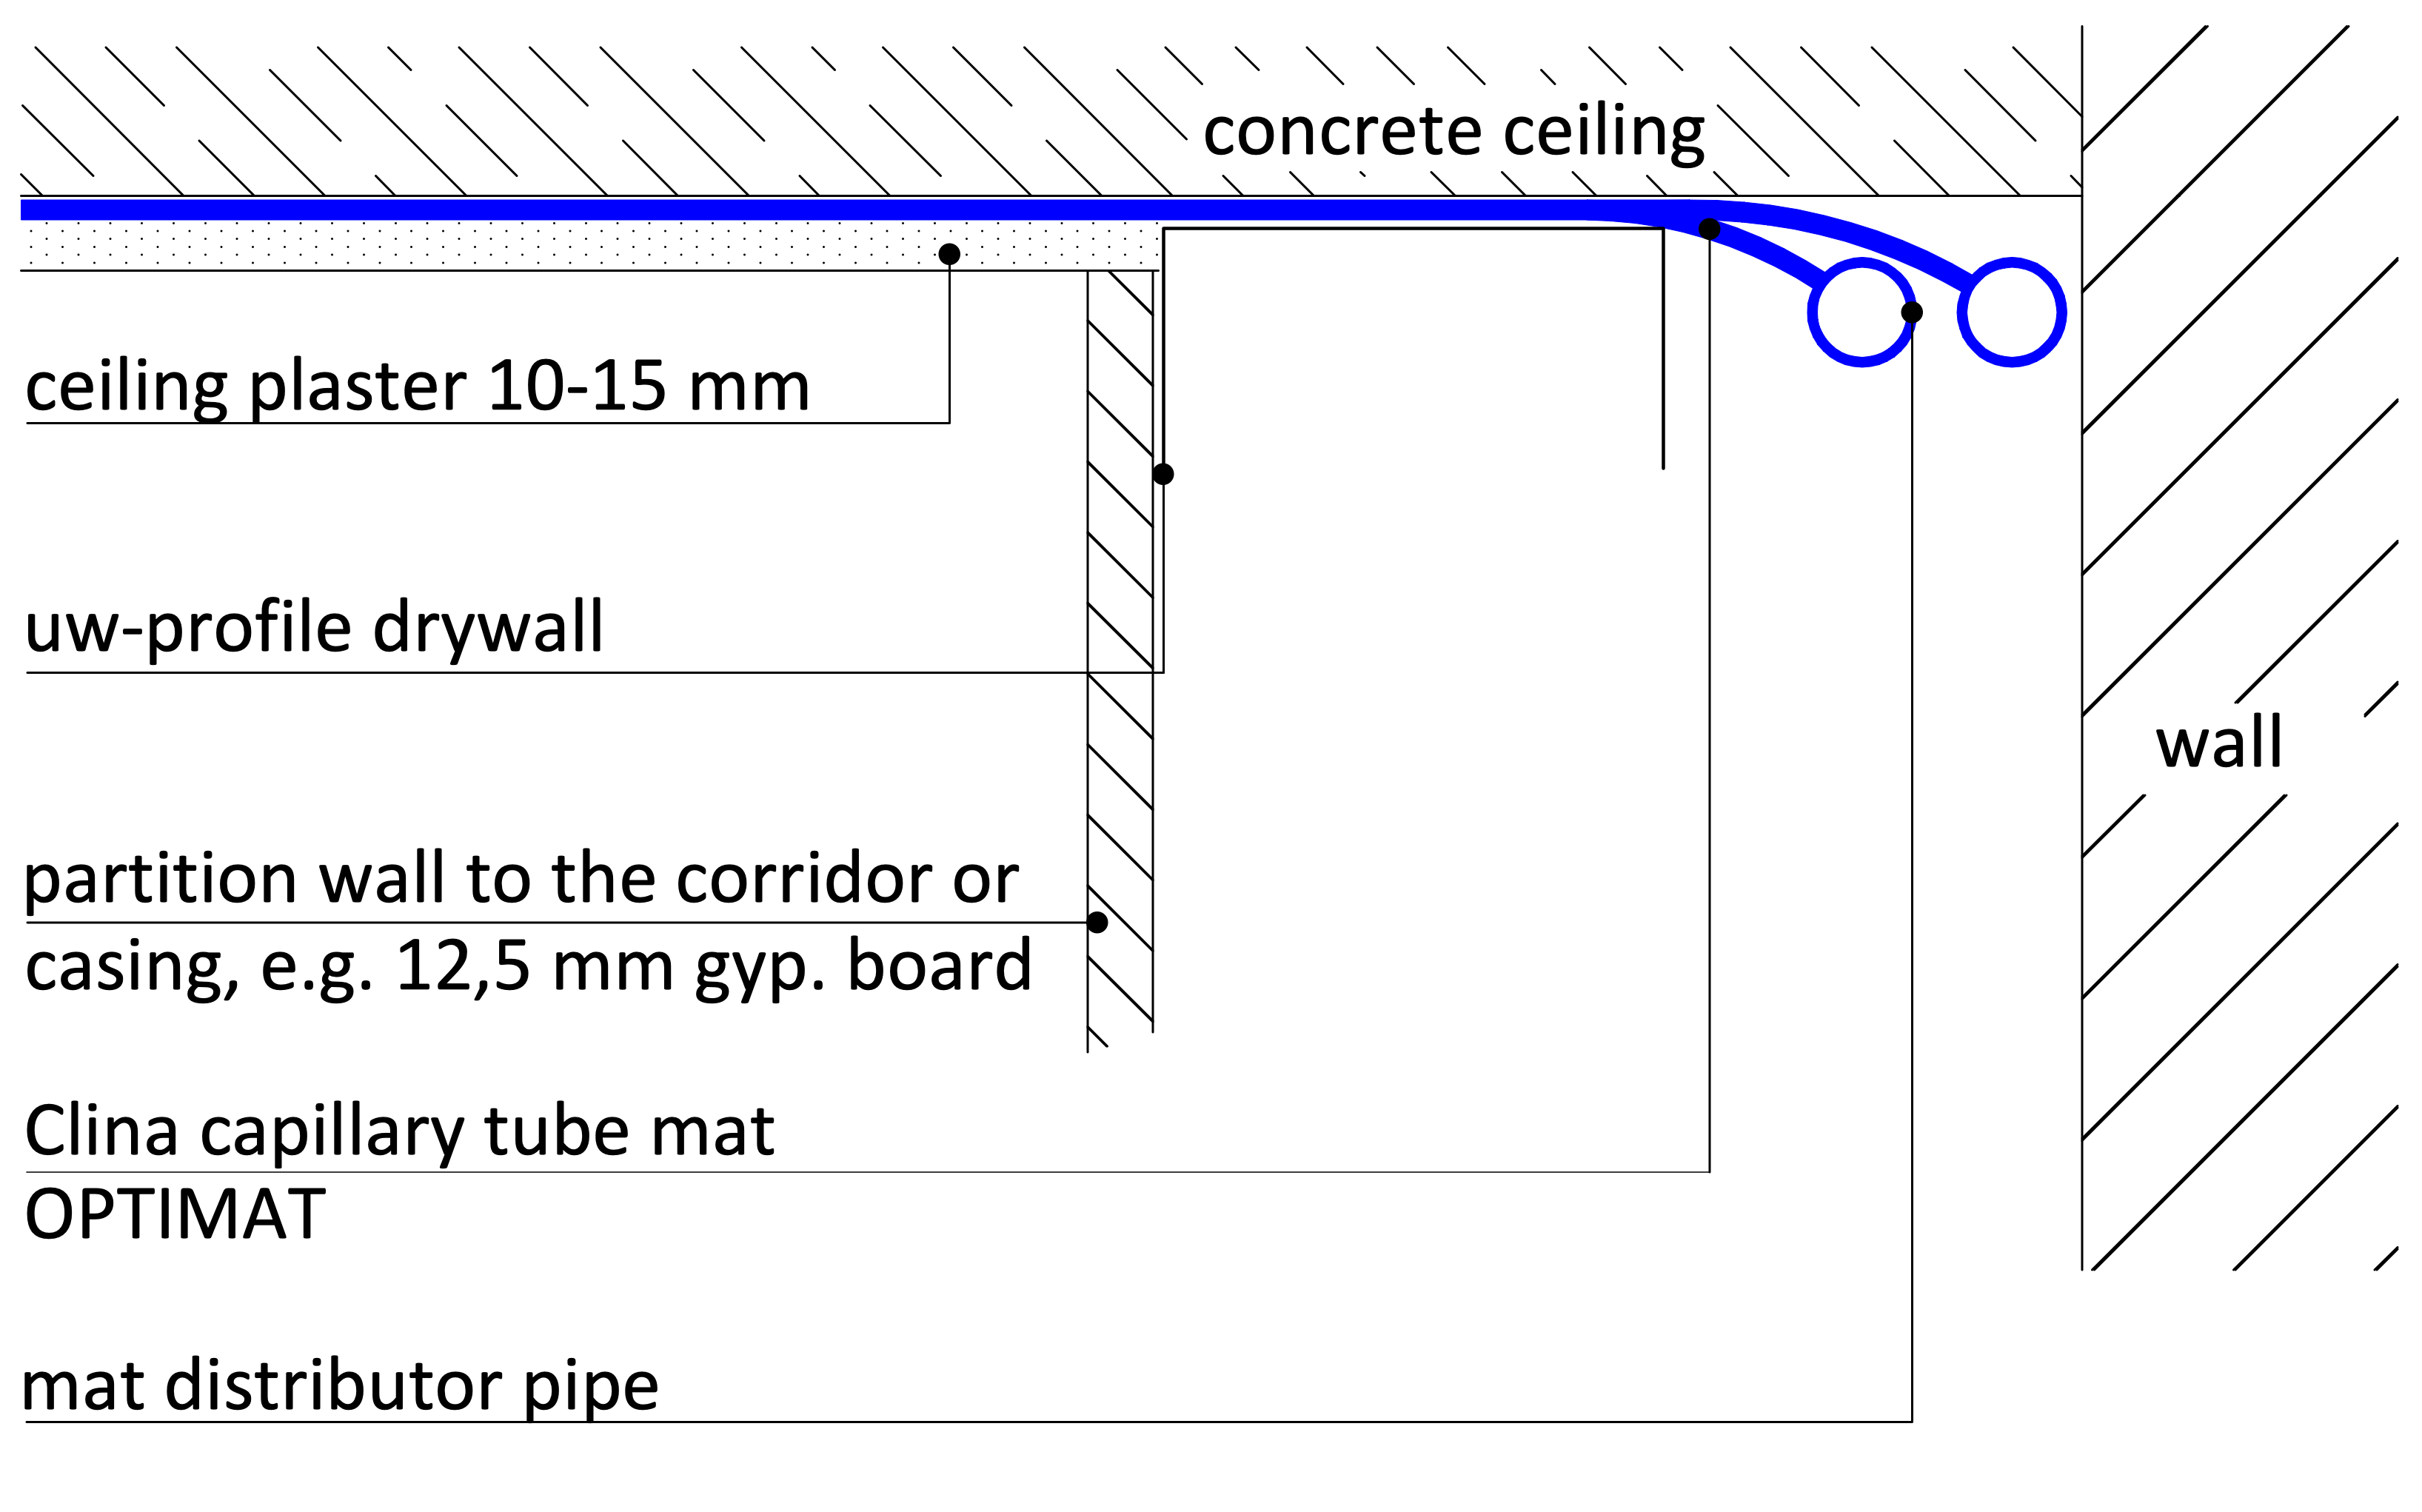 plaster on bare concrete-ceiling with casing